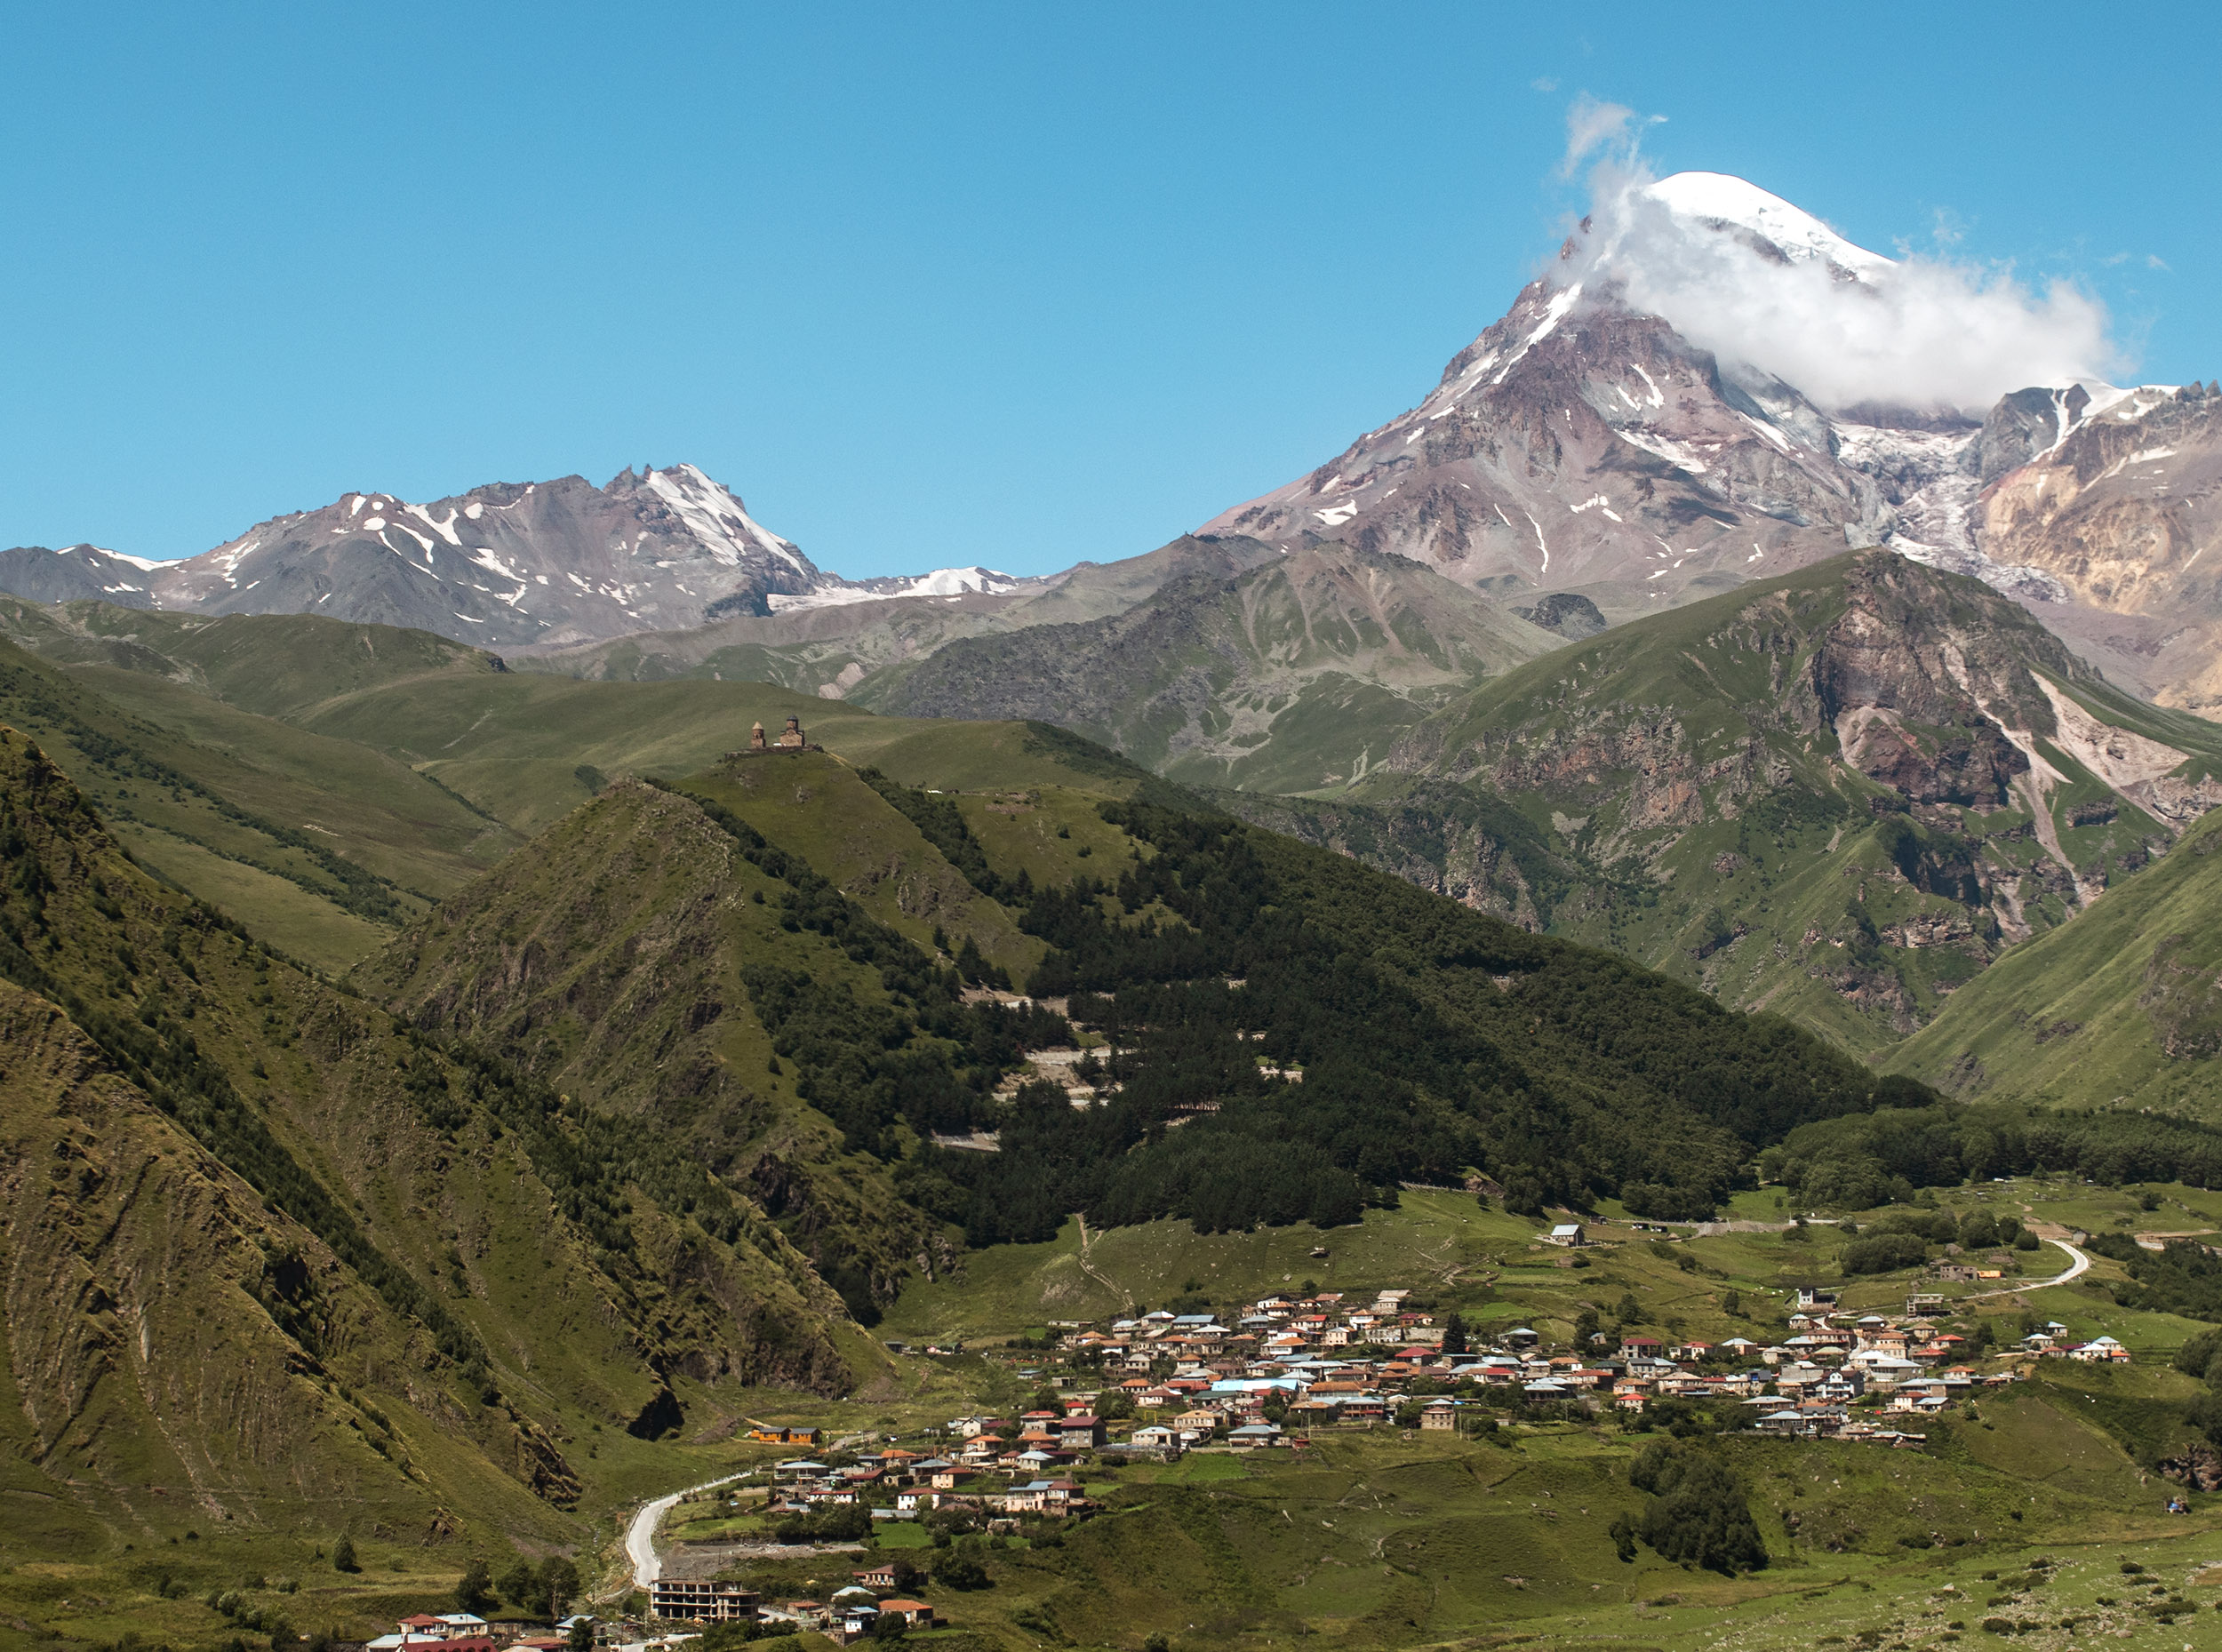 View from the Rooms Hotel in Kazbegi, Georgia